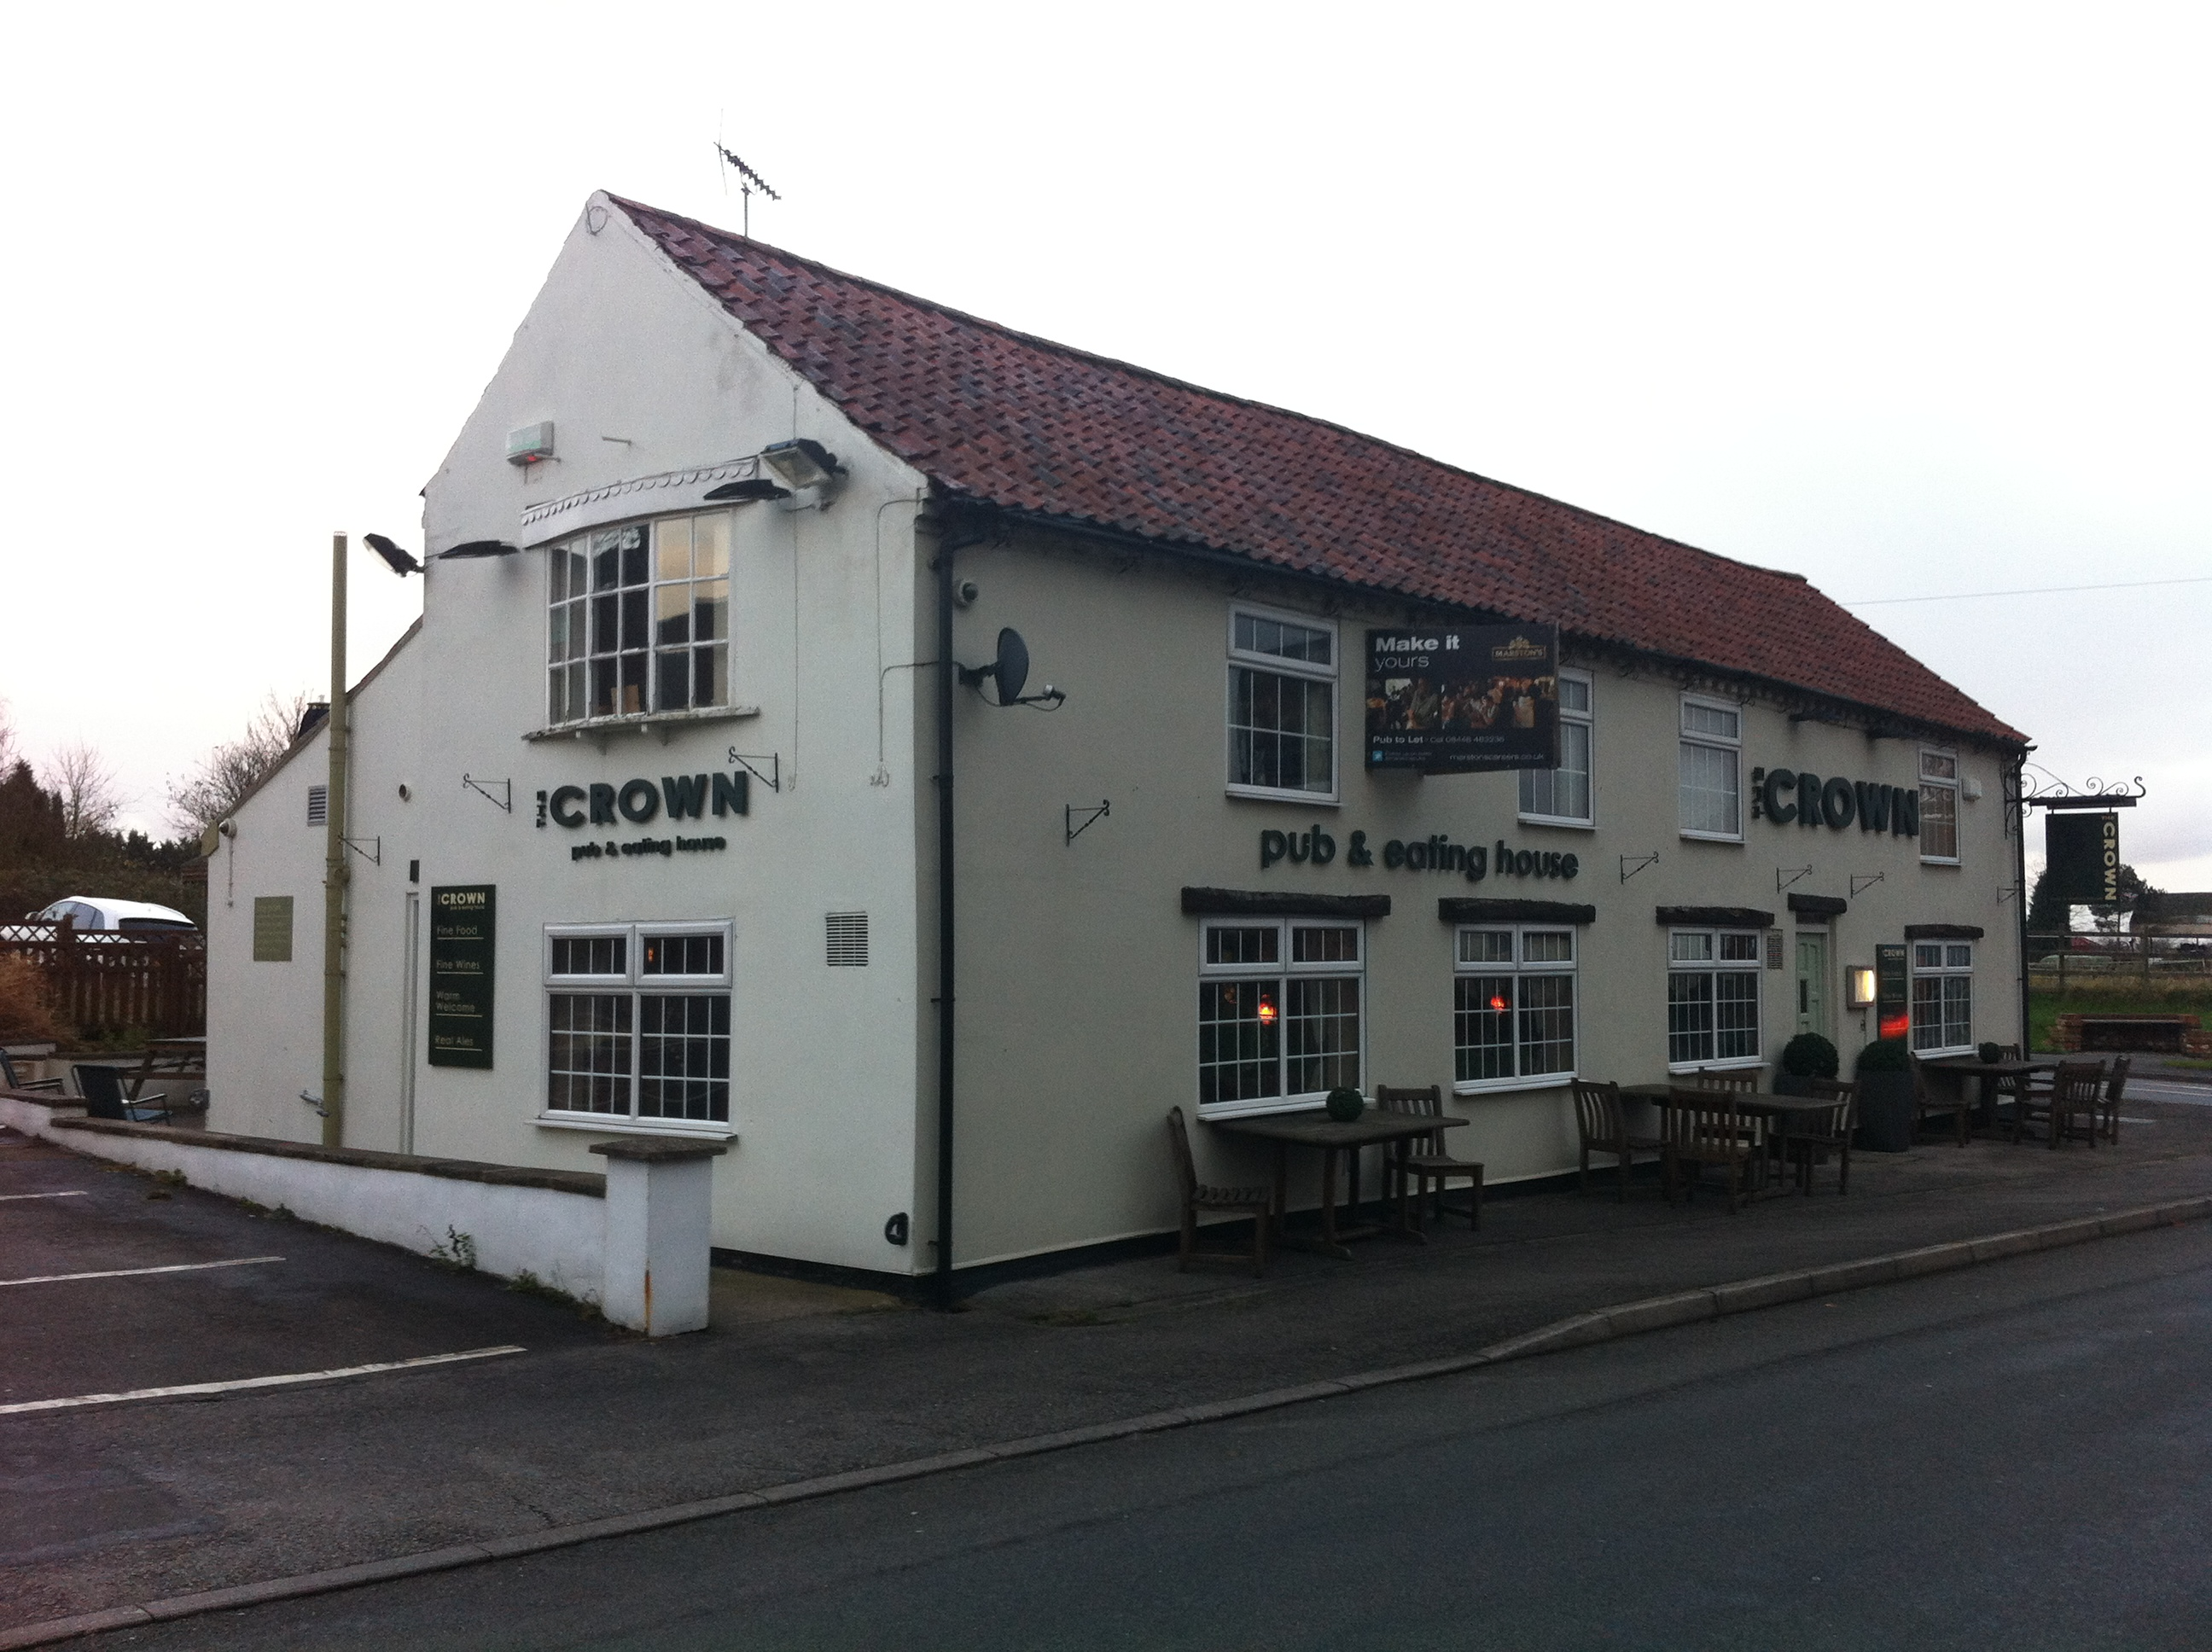 The Crown, High Street, NEWARK, Nottinghamshire - UNDER OFFER